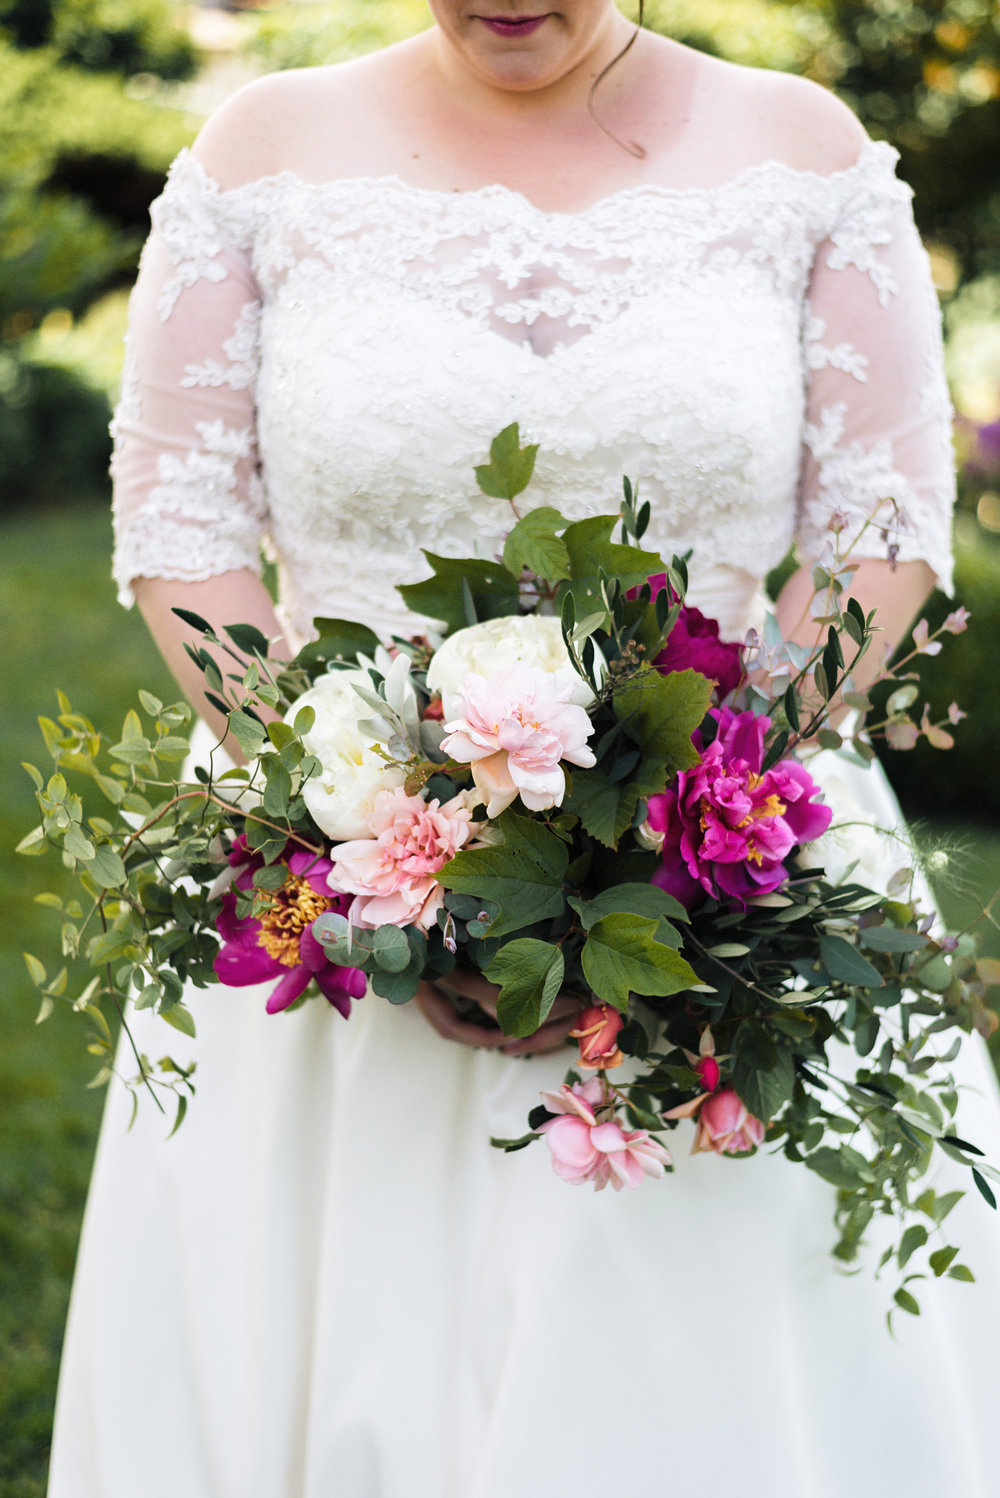 Romantic Lace Wedding Gown and Garden Style Pink and Green Bouquet at Roche Harbor Wedding